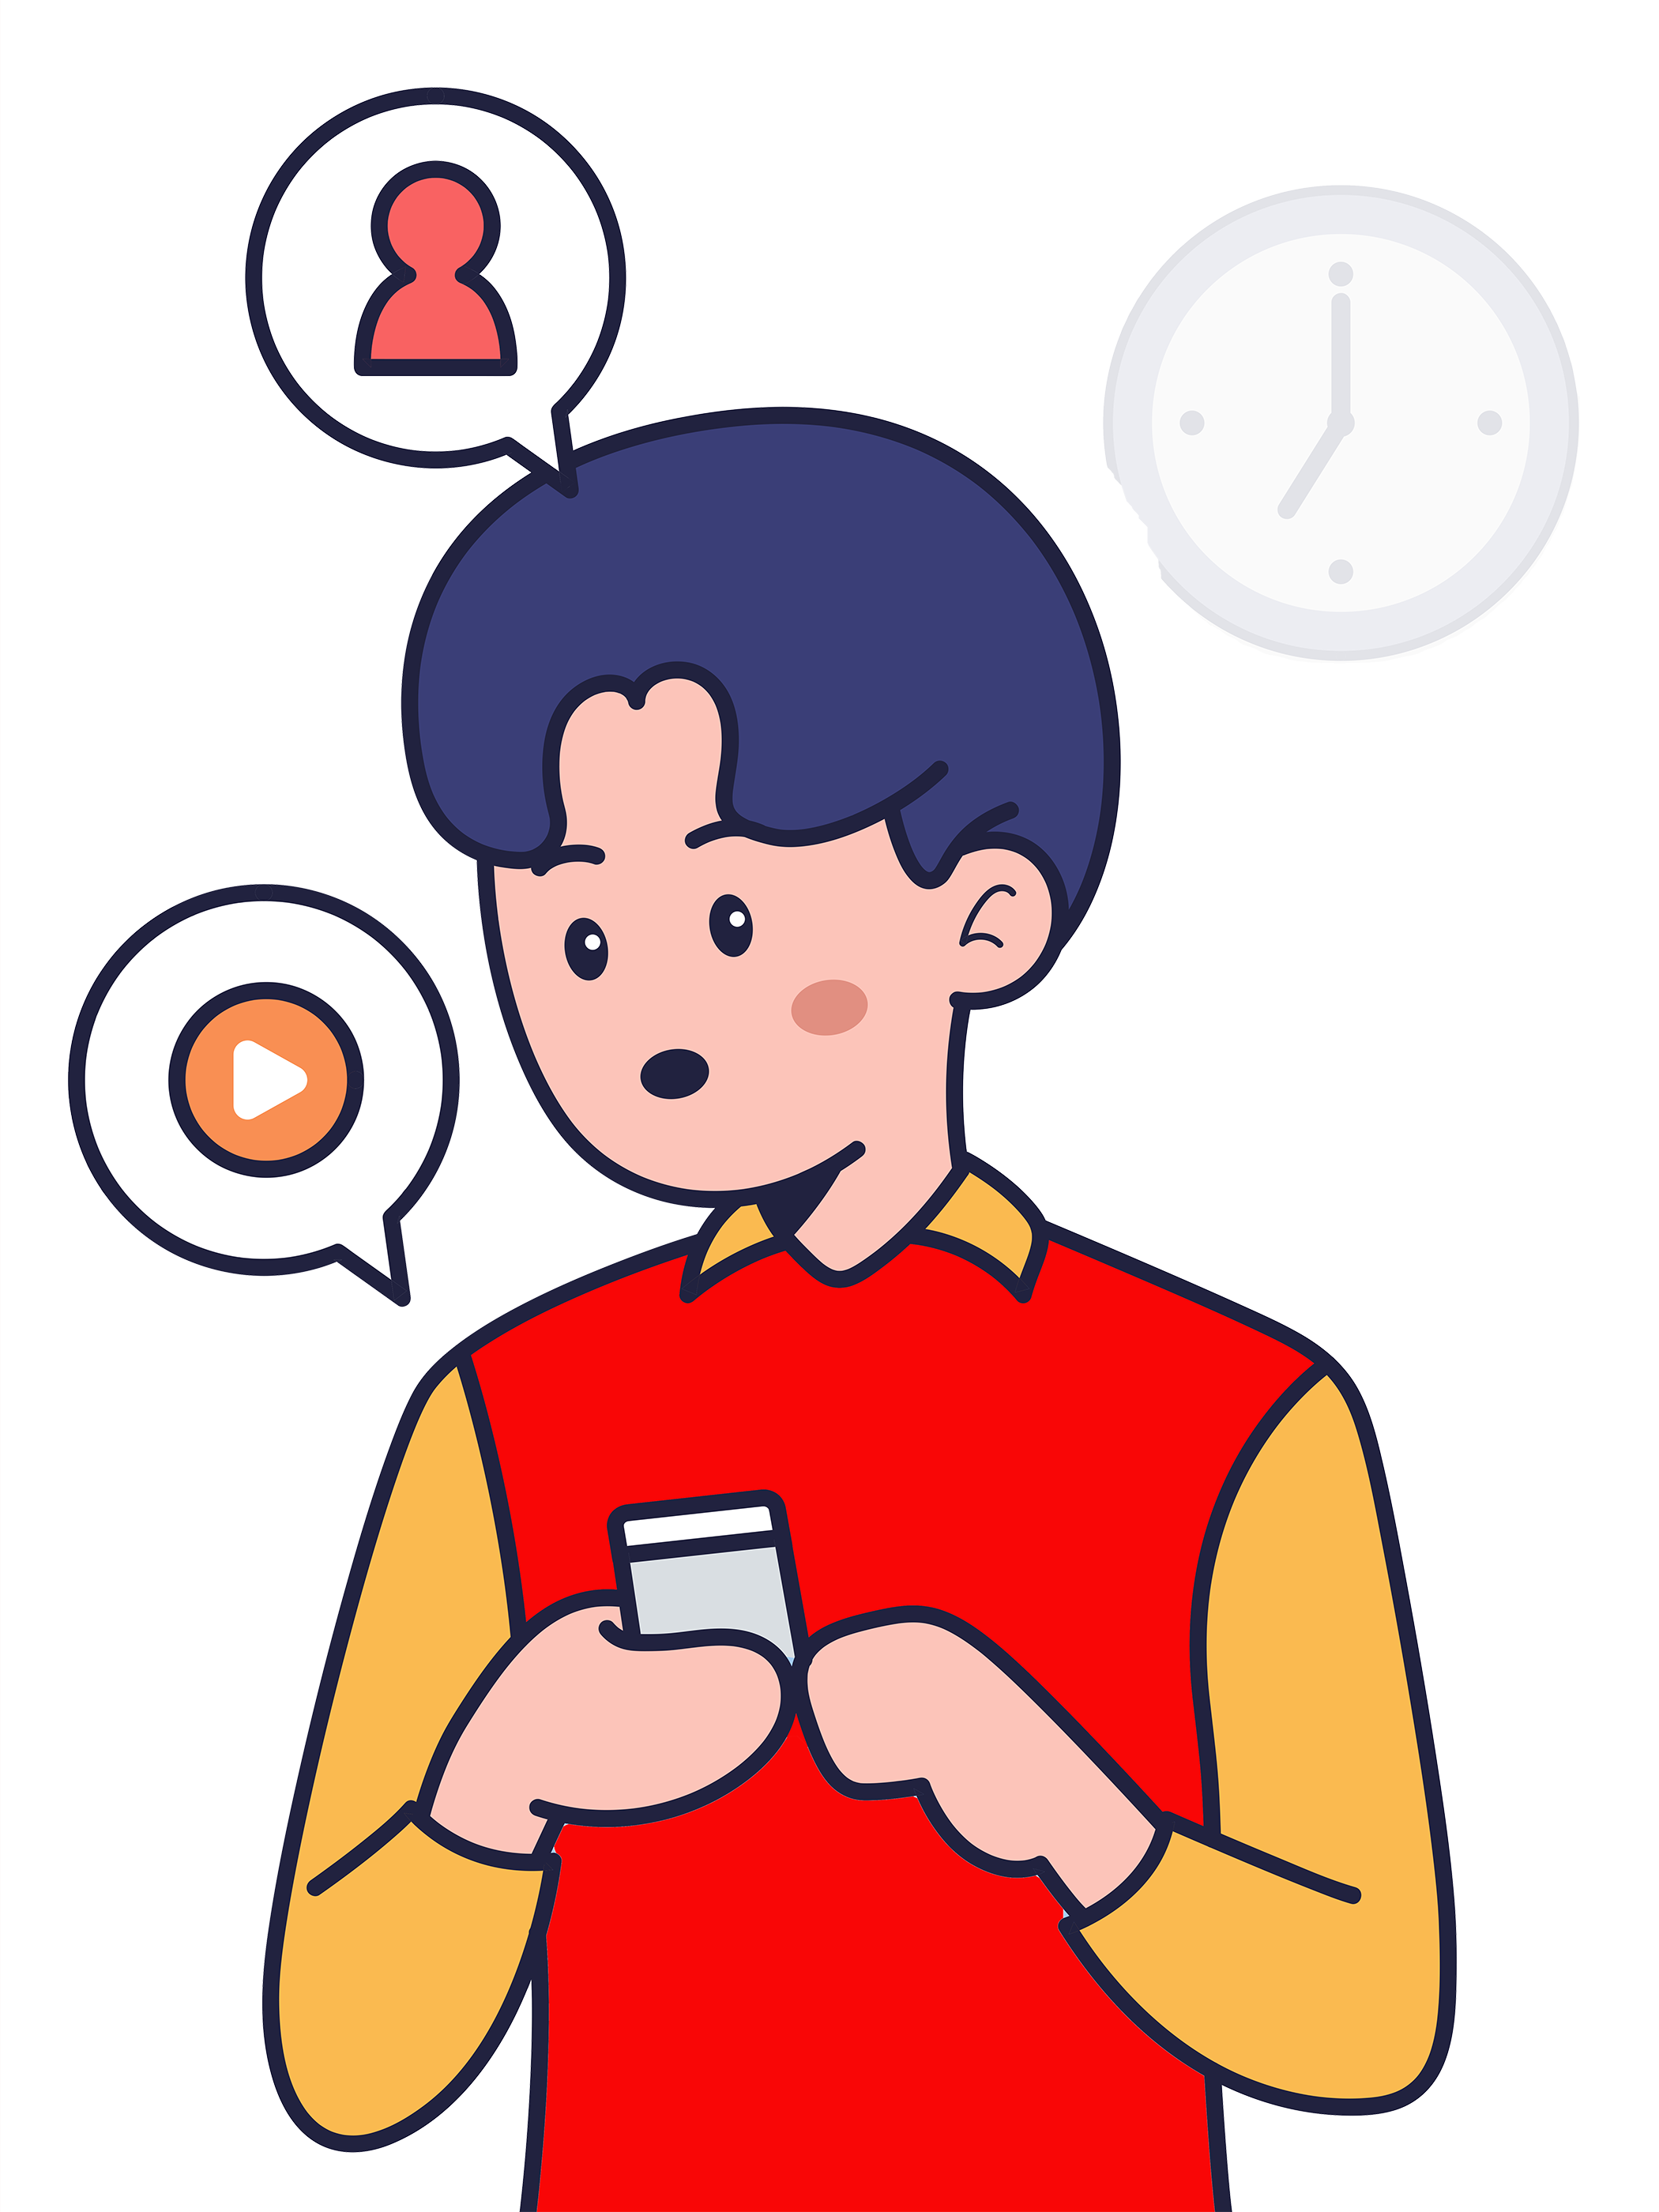 https://careernet.com/wp-content/uploads/2021/06/boy-with-smartphone-graphic-copy-1.png